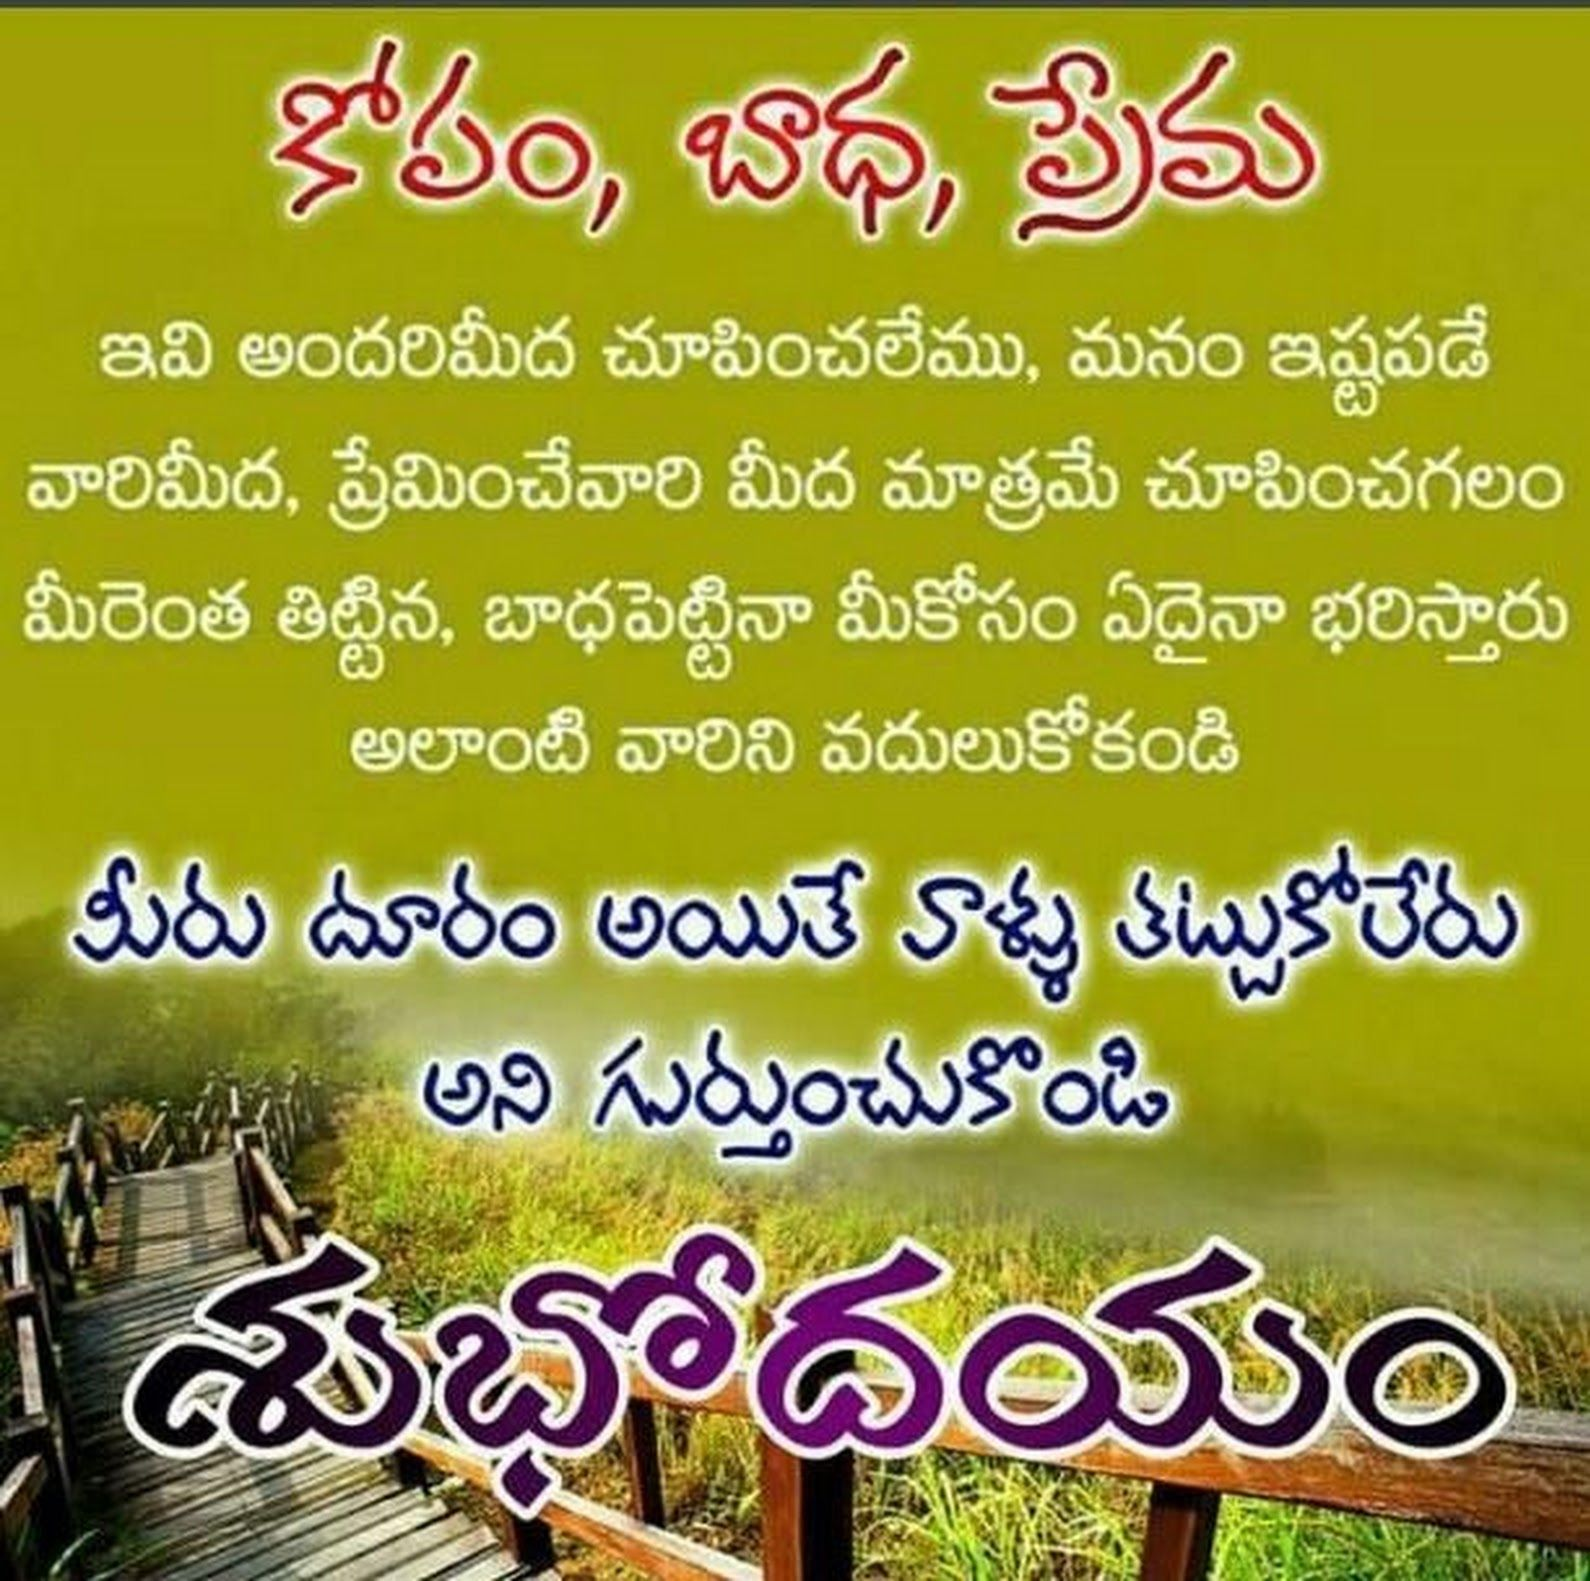 Pin By 9491622709 On Telugu Funny Good Morning Quotes Good